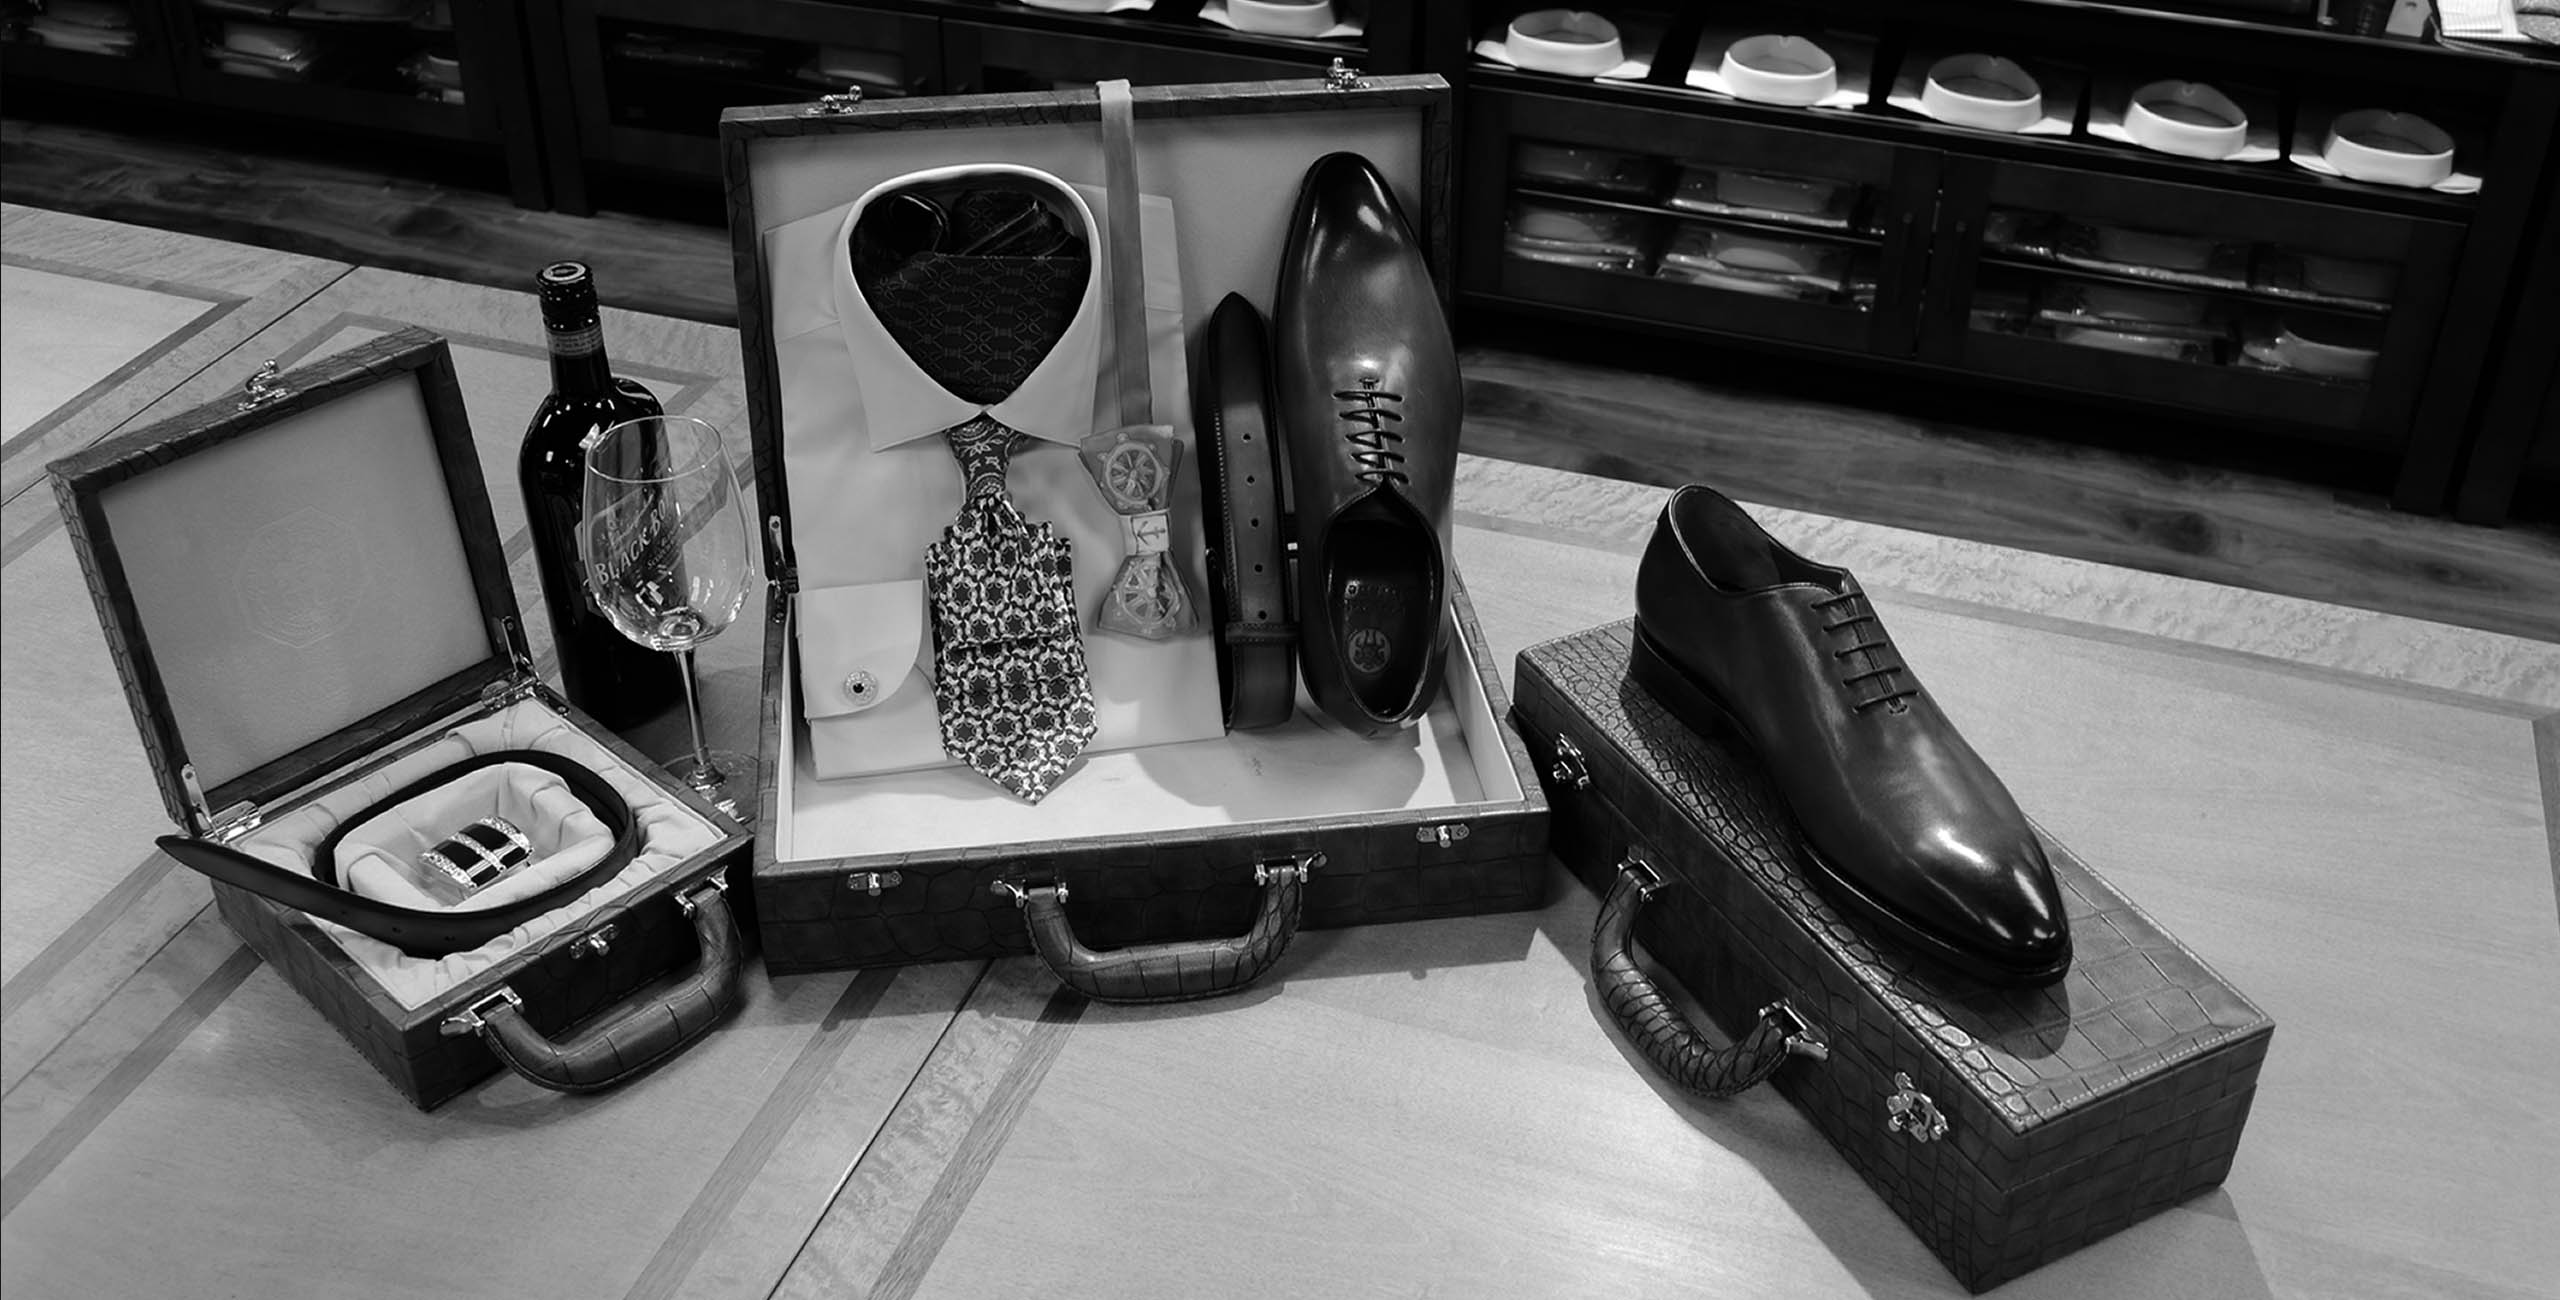 Ferruccio Milanesi Luxury menswear and accessories, one-of-a-kind men's shirts, suits and ties, an exclusive menswear store in Vancouver